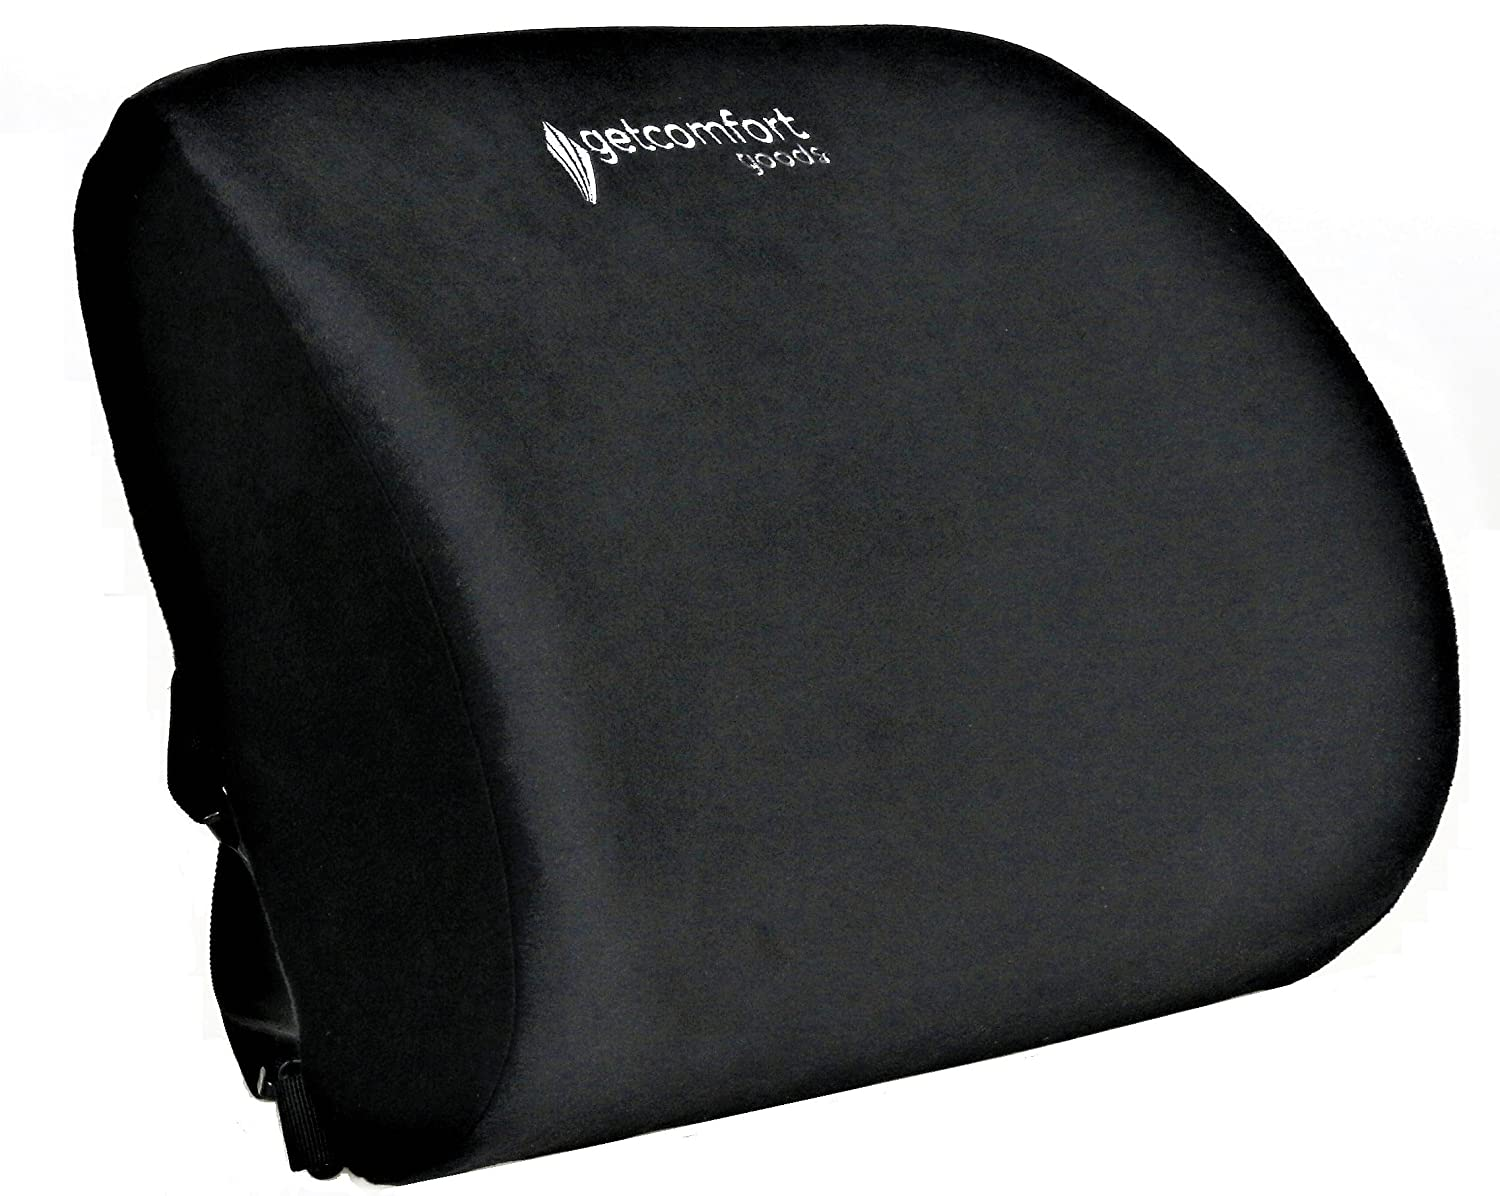 GetComfort Goods Lumbar Support Pillow for Lower Back Support and Pain Relief That Helps Improve Your Posture (Black)